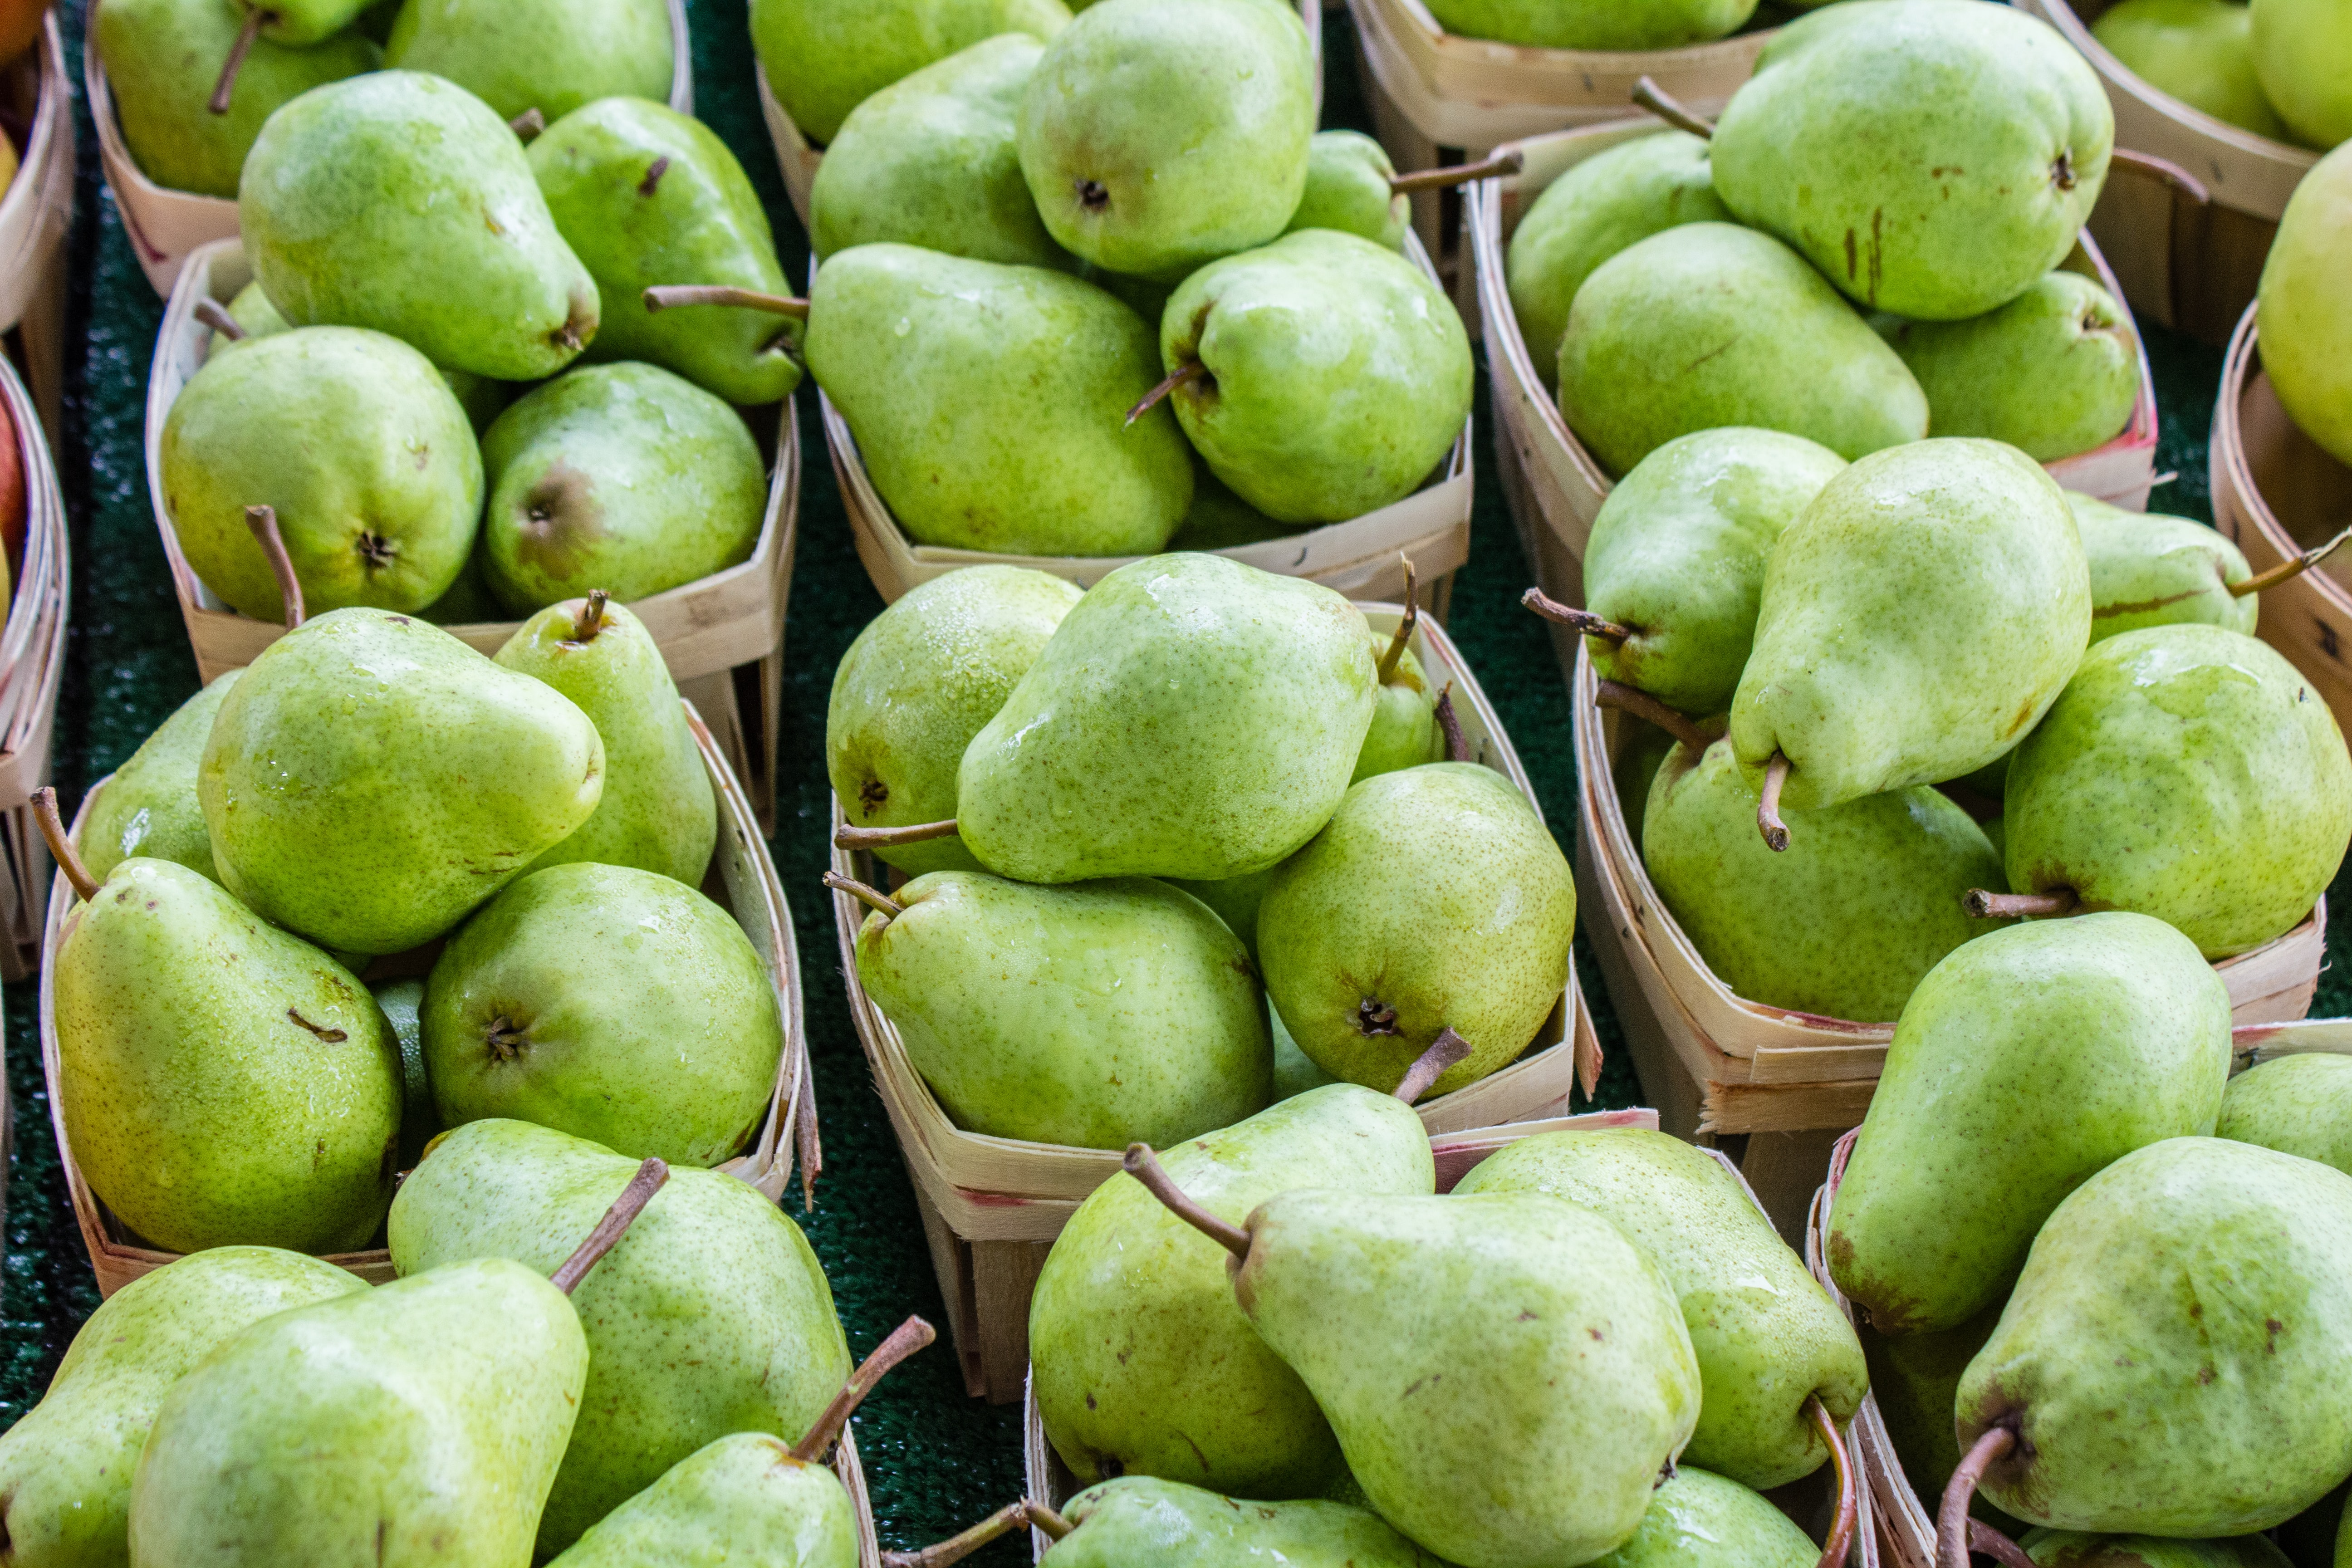 green pear fruits